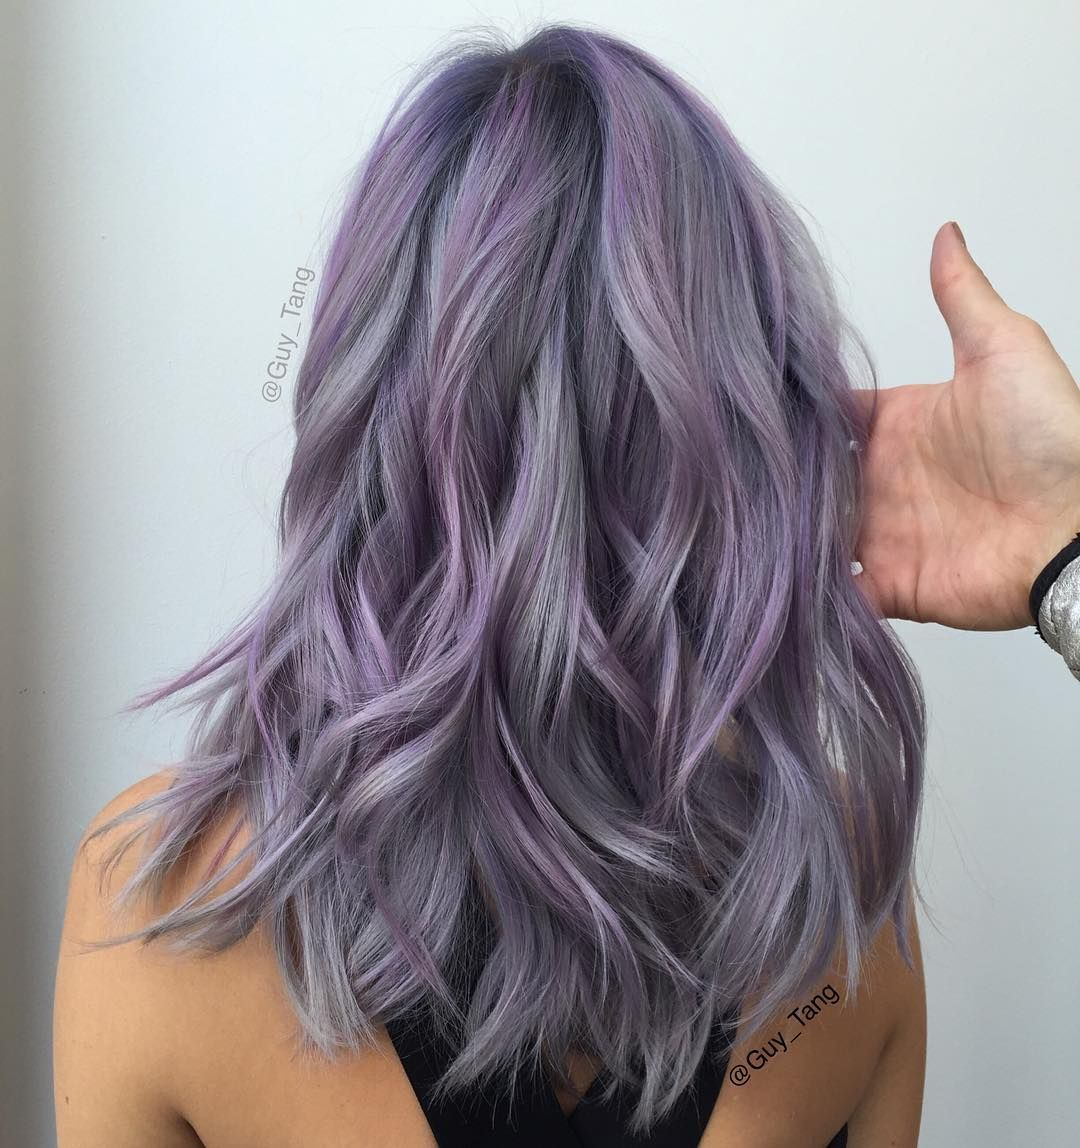 Purple hair dye boy pin by kimberley copley on l o c k s  pinterest  culori păr păr